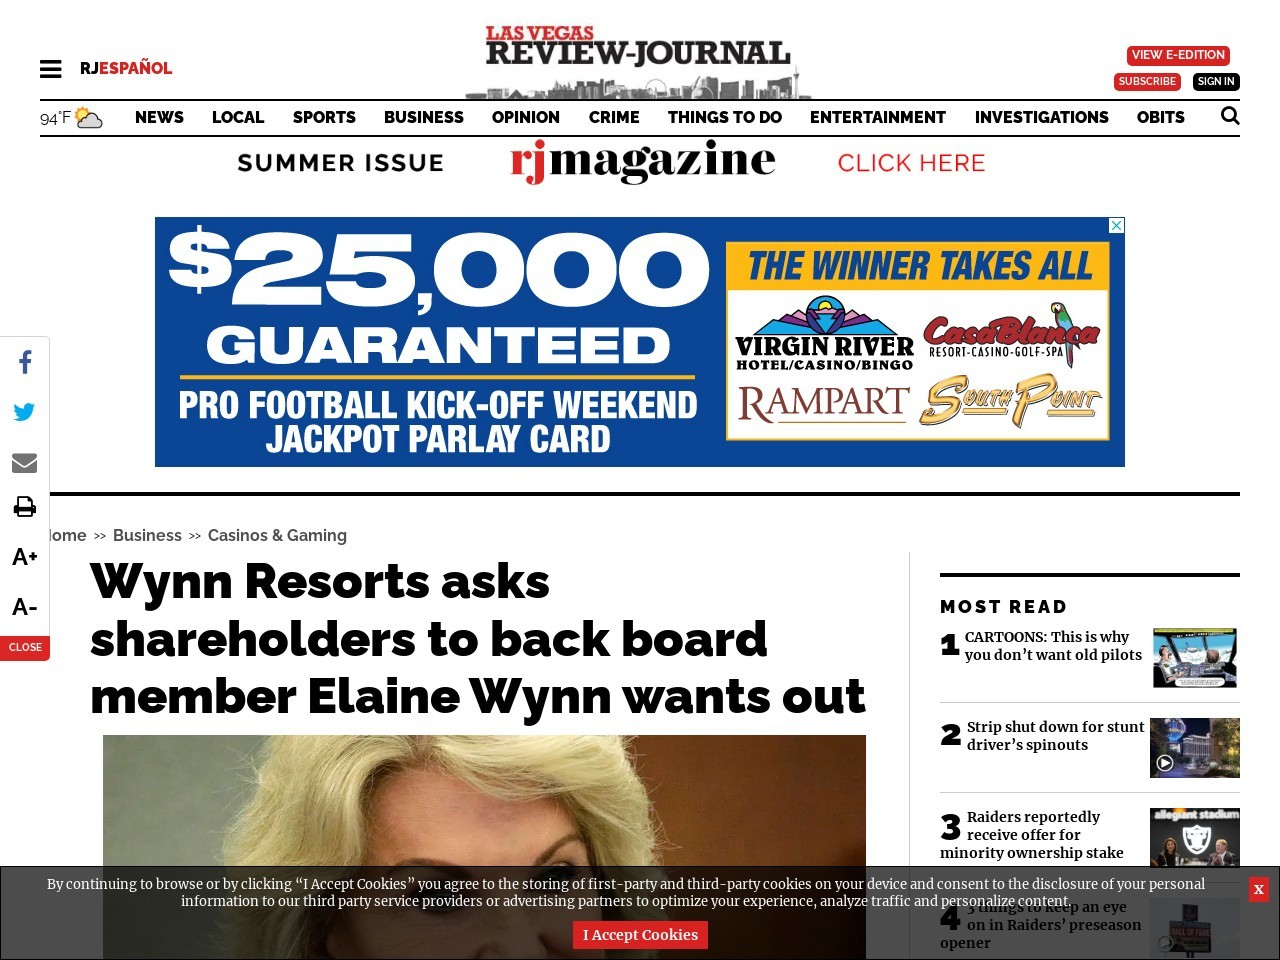 Wynn Resorts asks shareholders to back board member Elaine Wynn wants out